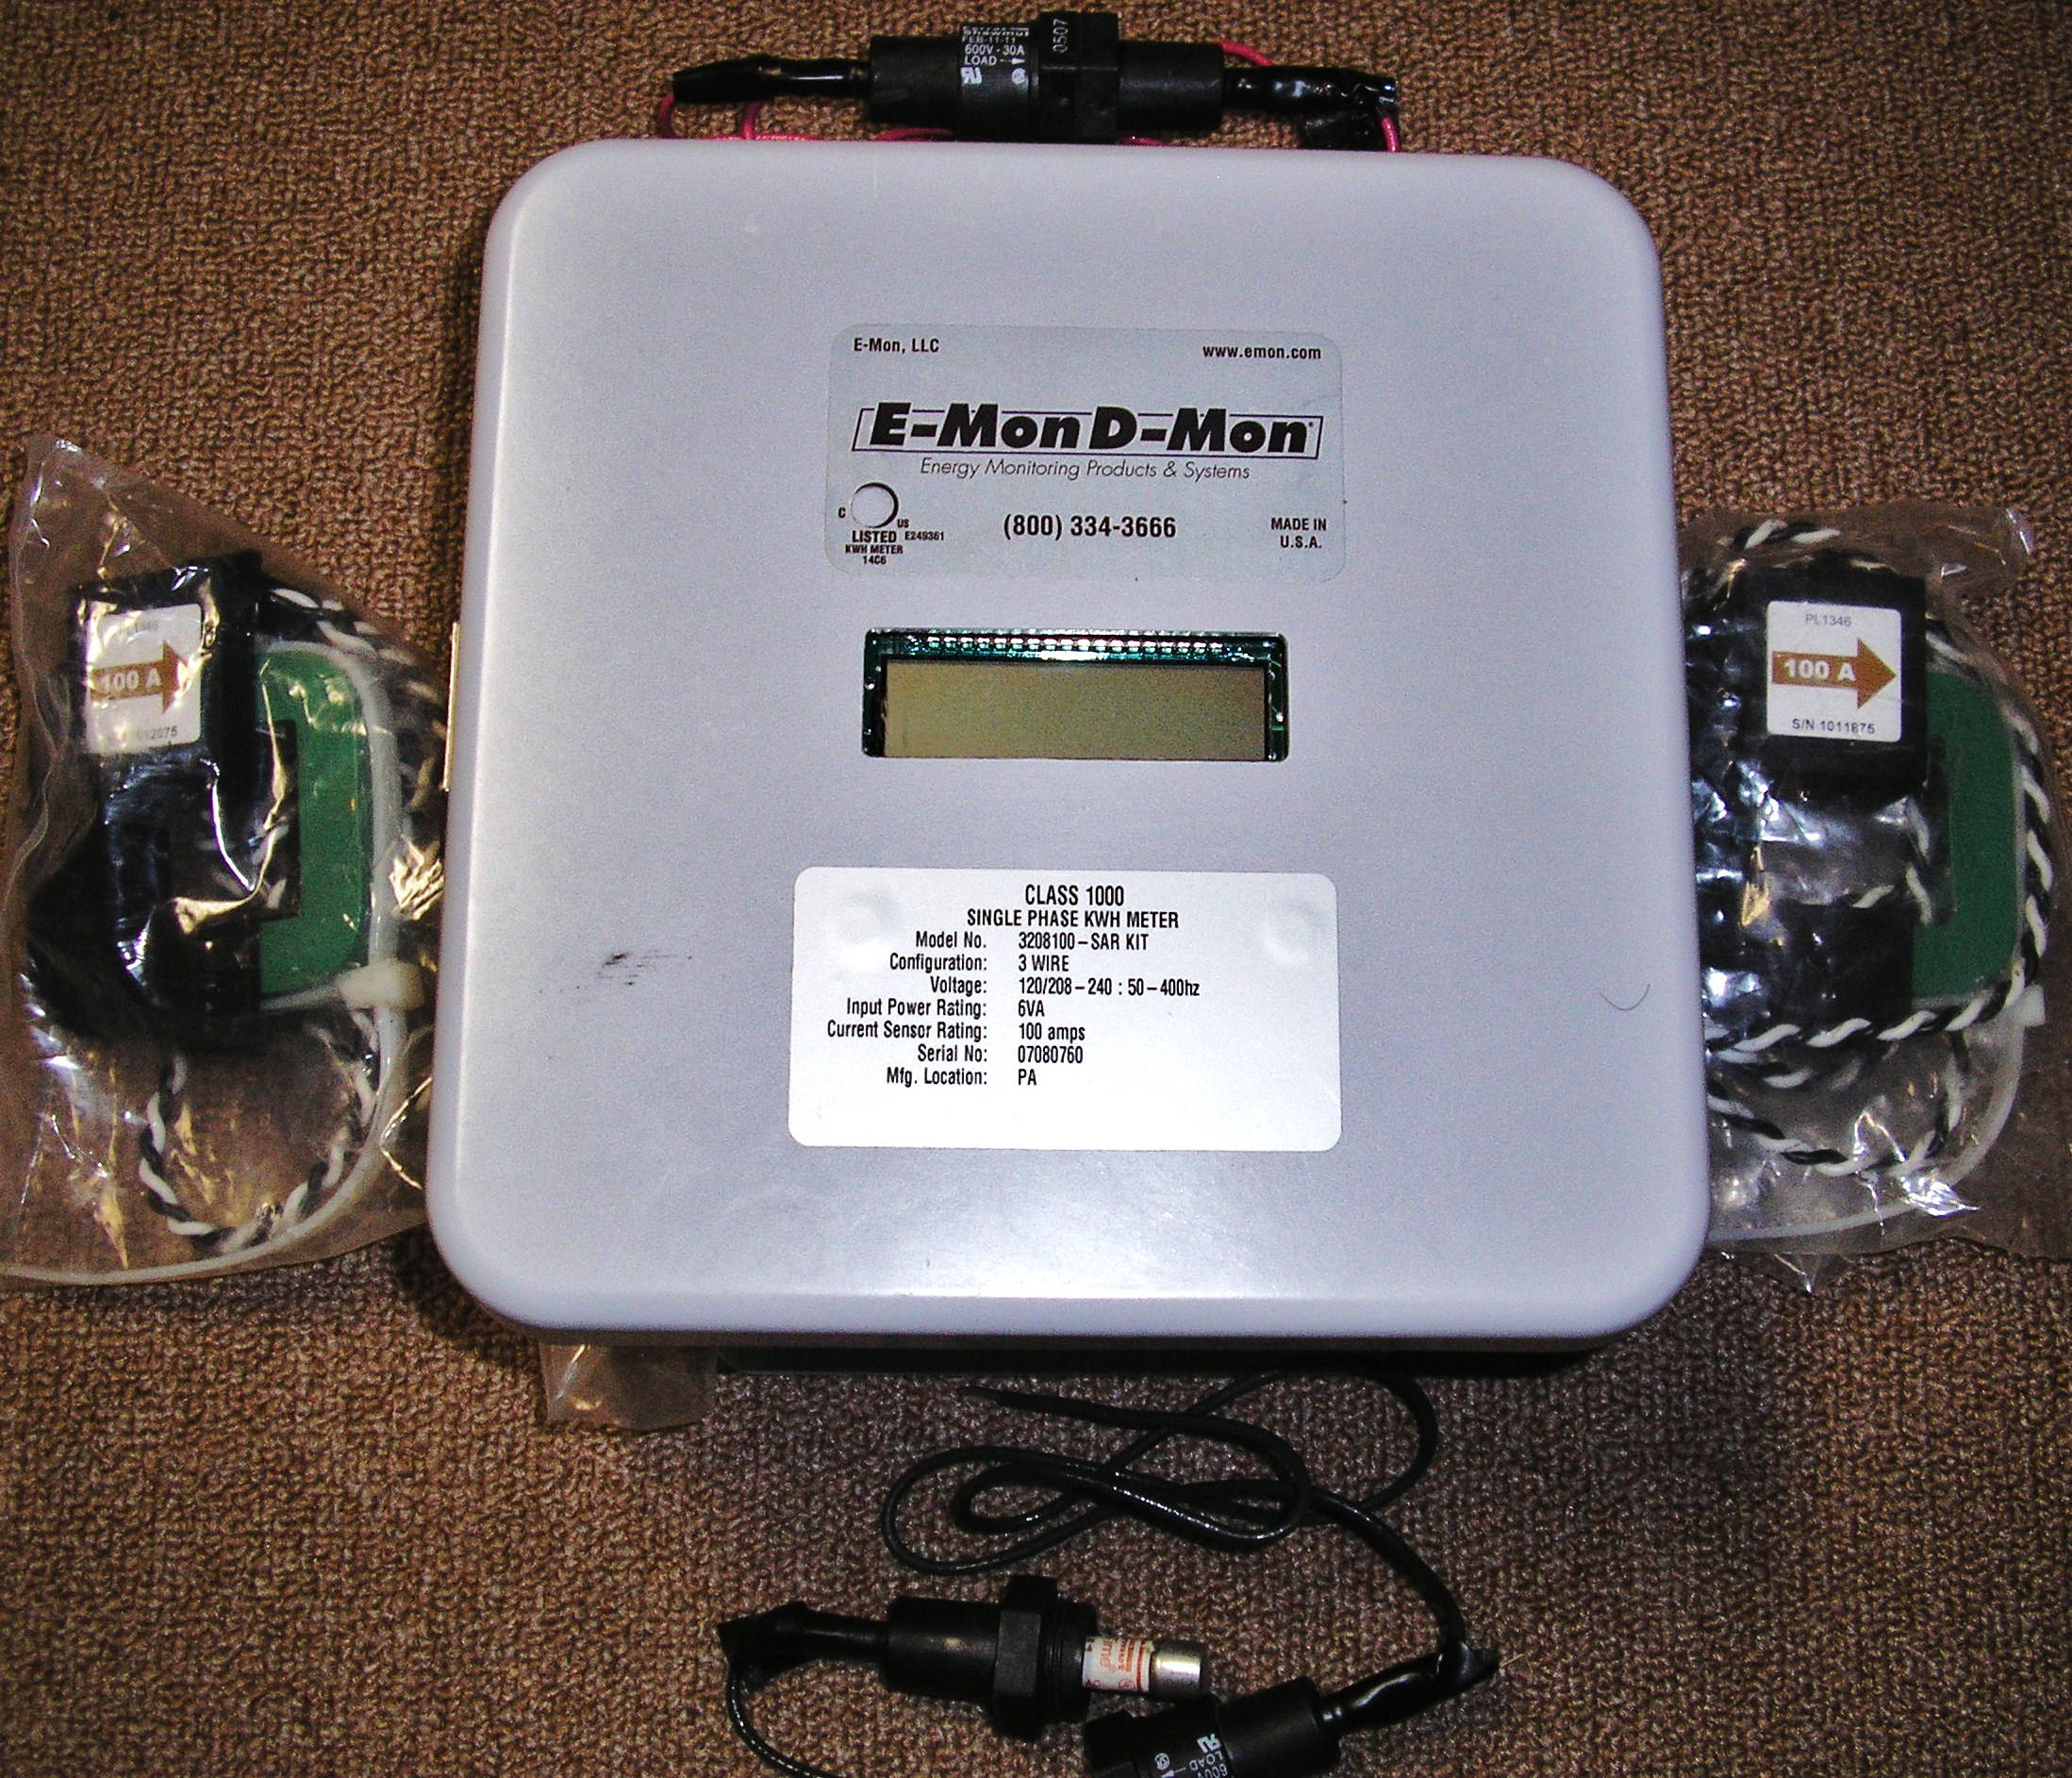 e mon used electric meters emon dmon wiring diagram at crackthecode.co